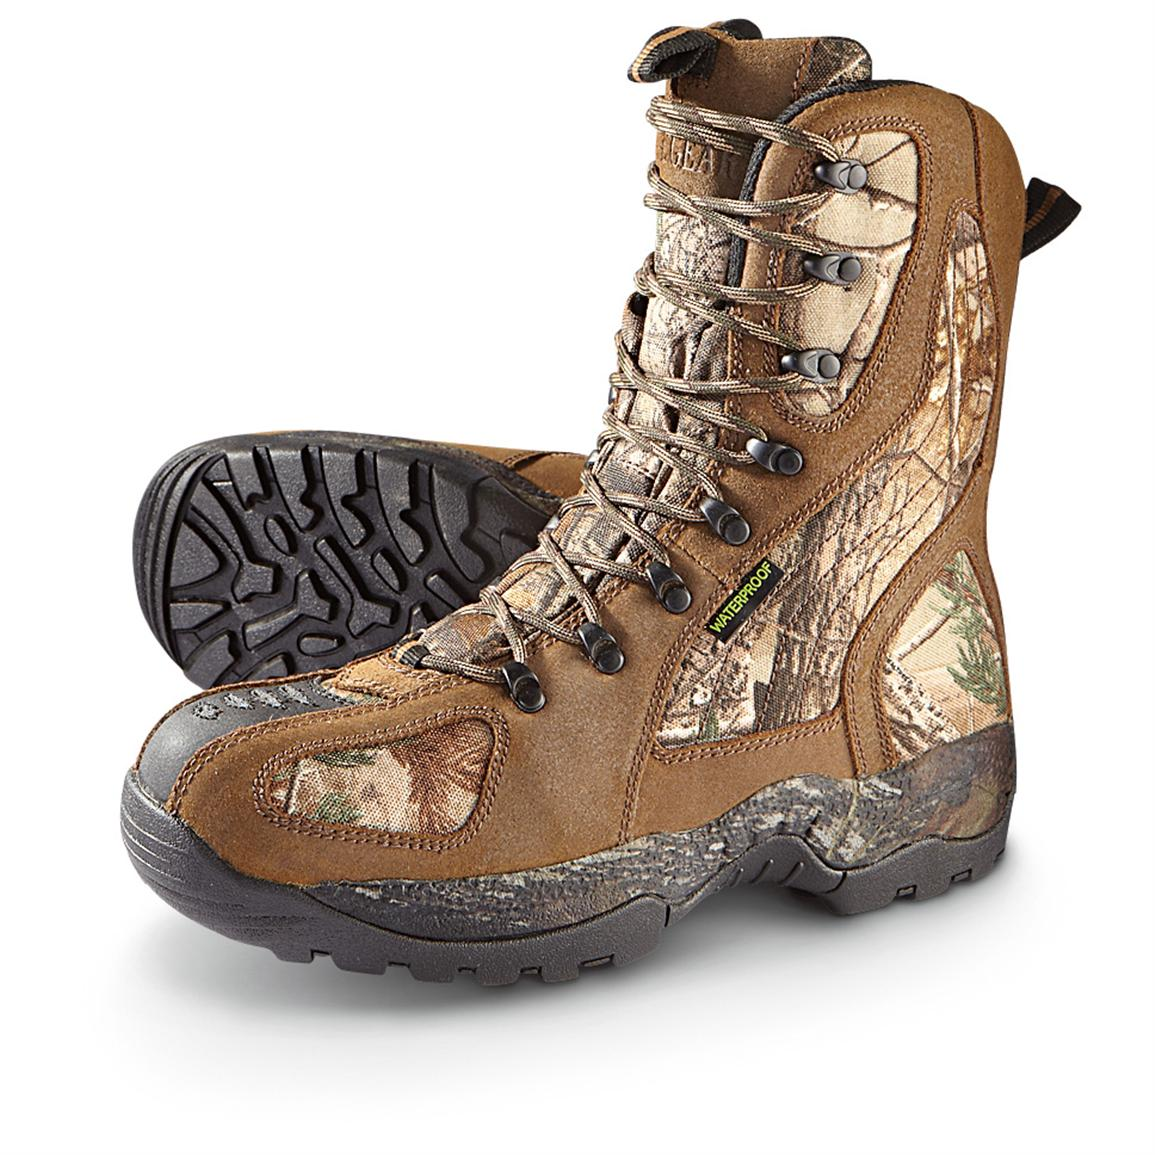 Men's Guide Gear® Waterproof 1,000 Gram